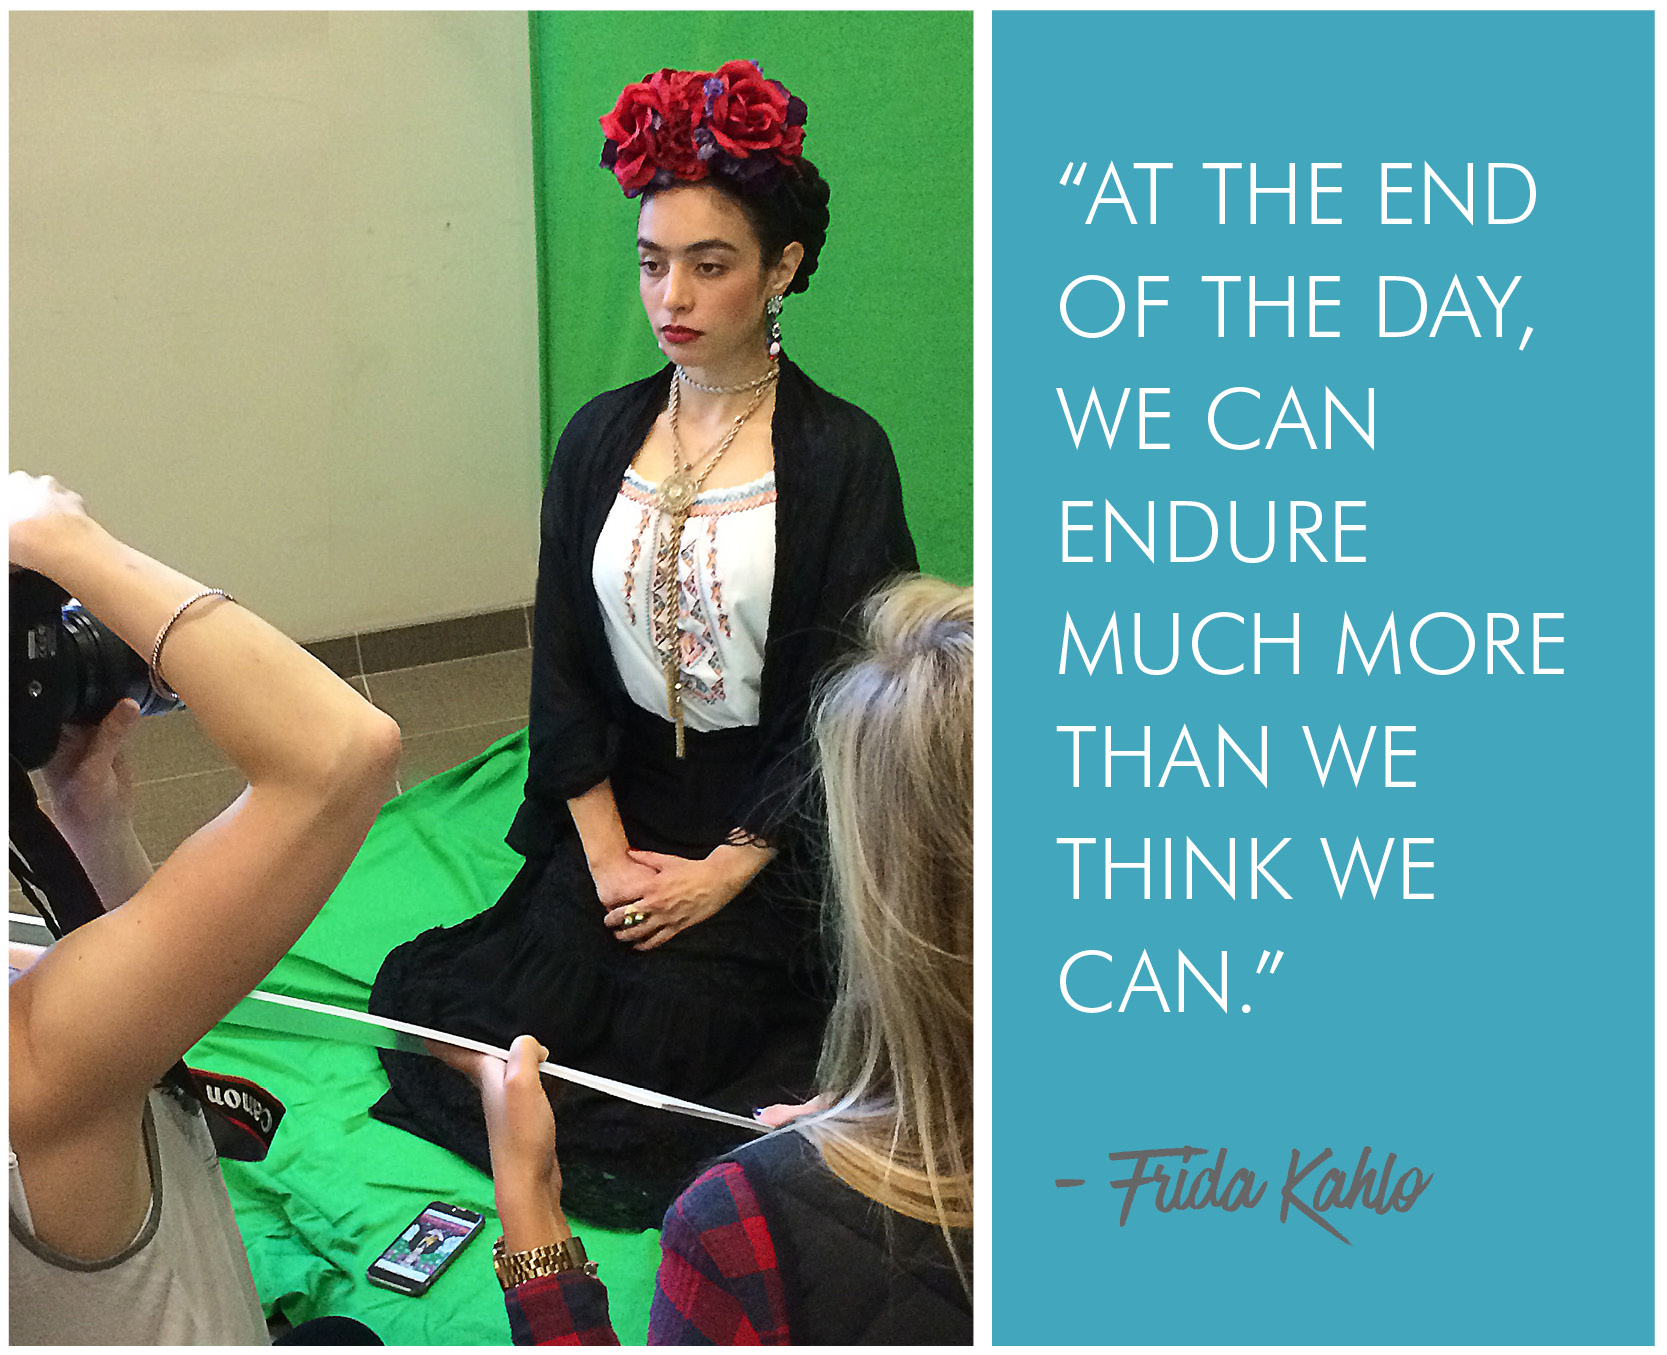 'At the end of the day, we can endure much more than we think we can.' - Frida Kahlo